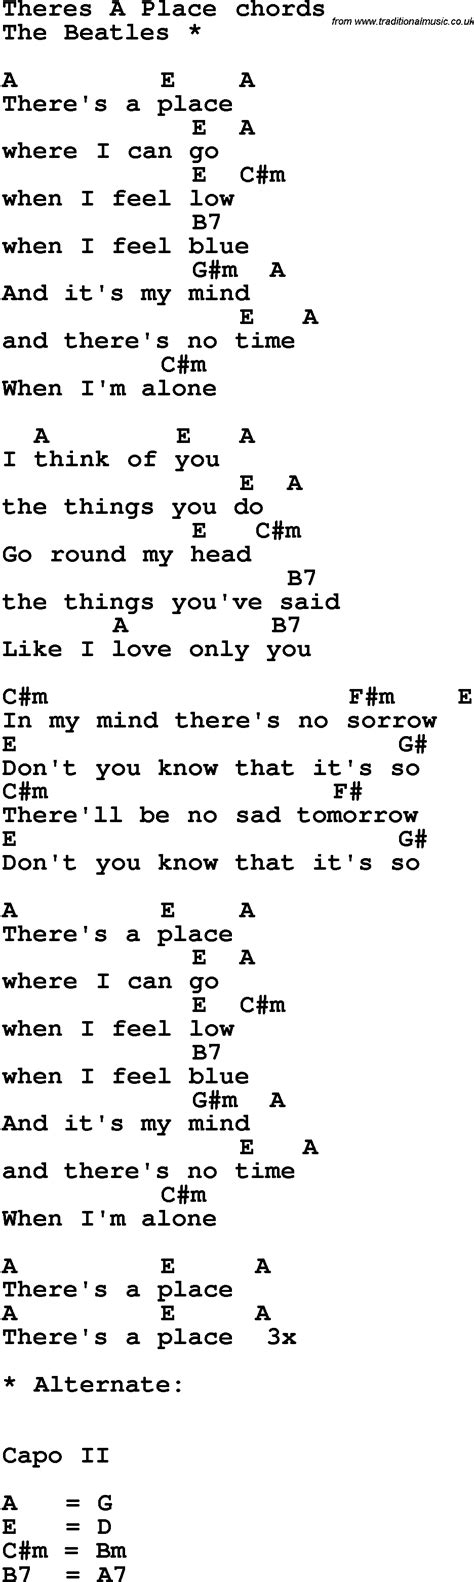 A Place Chords Song Lyrics With Guitar Chords For There S A Place The Beatles